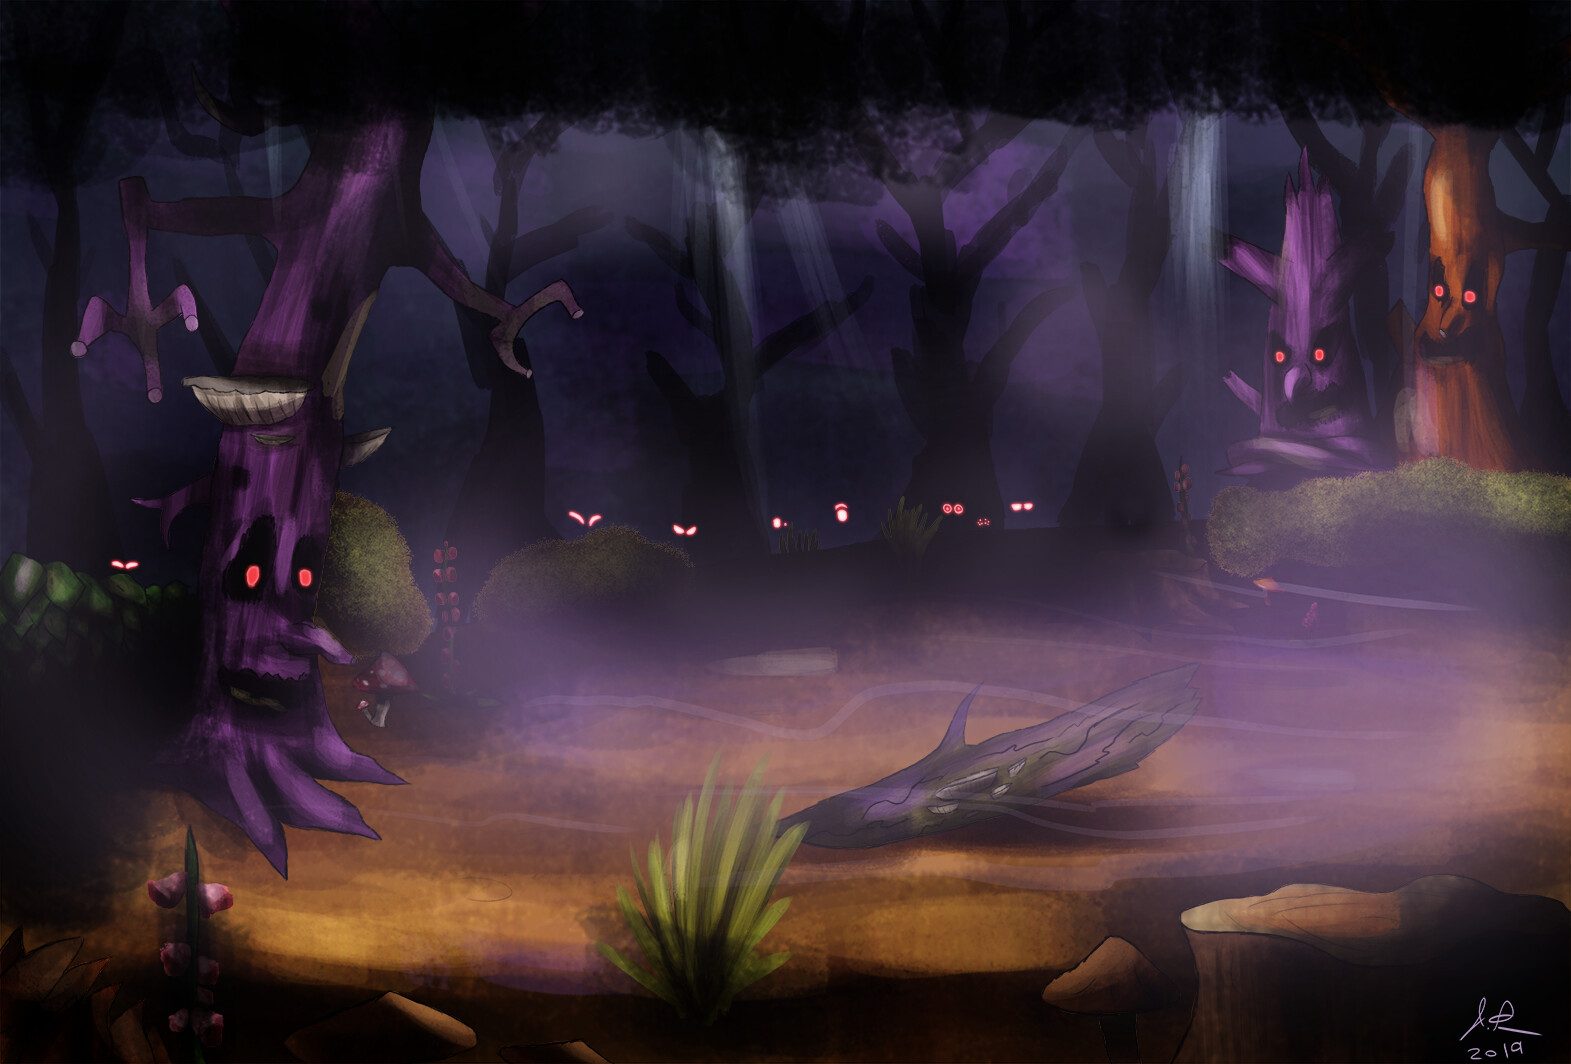 The gloomy woods. I was primarily thinking of Donkey Kong Country 2 when making this.